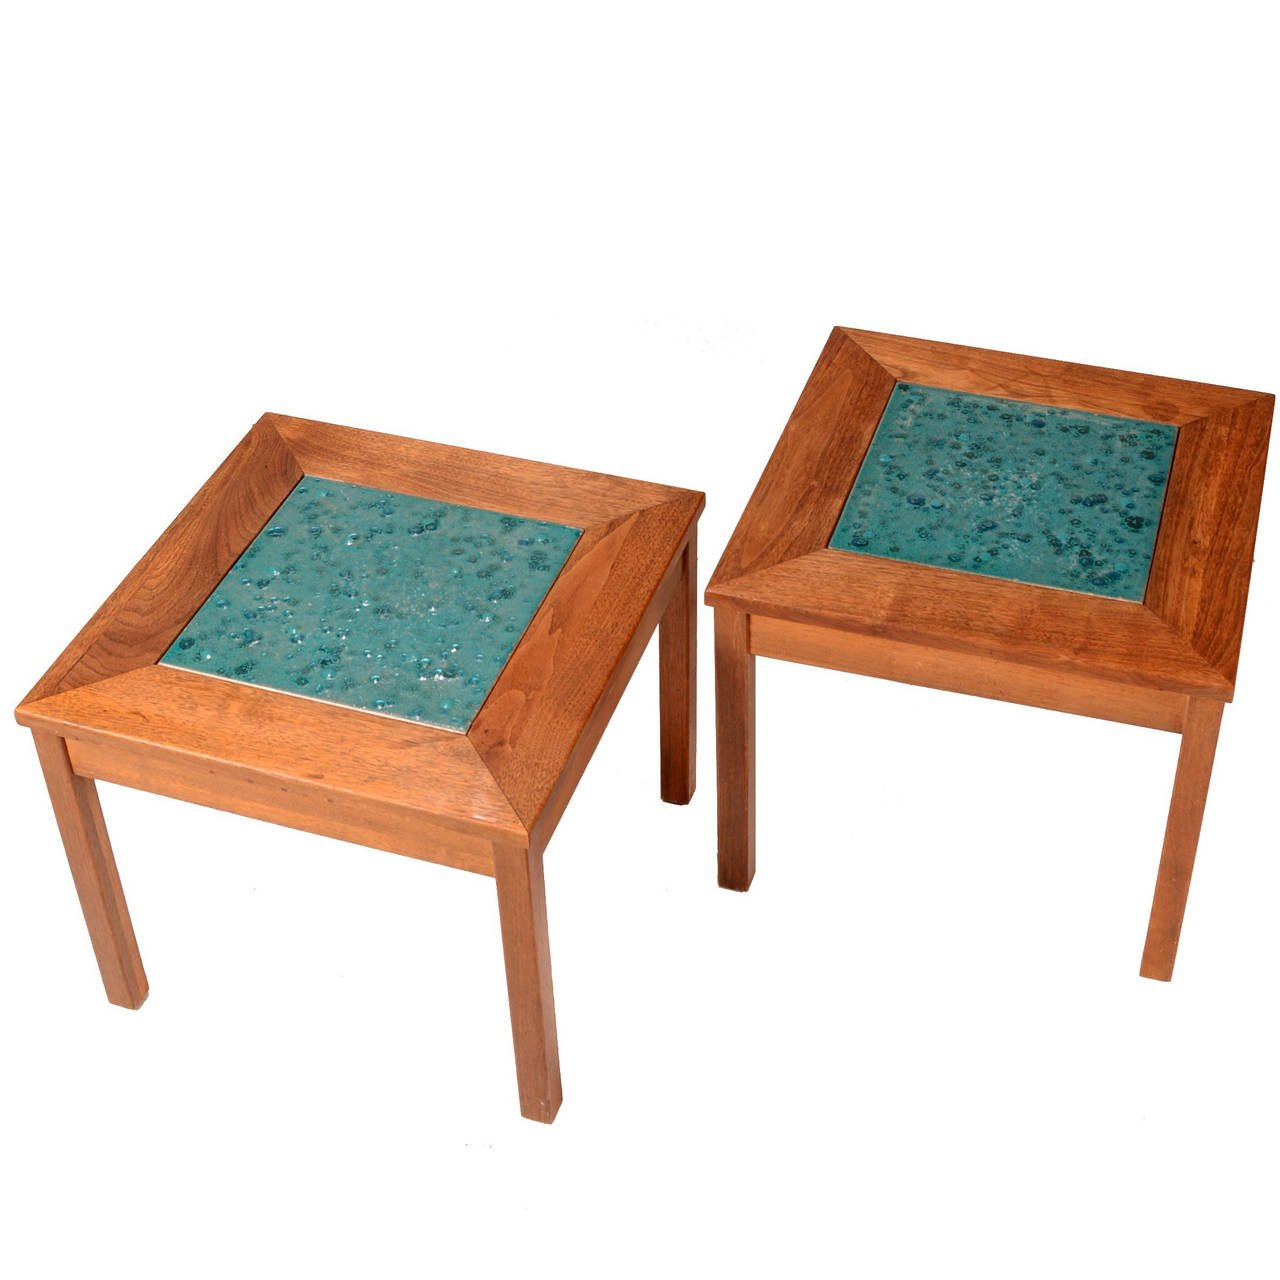 john keal for brown saltman constellation end tables motley table coffee with lots storage lazy boy mississauga royal furniture bangalore arrangement living room layout ethan